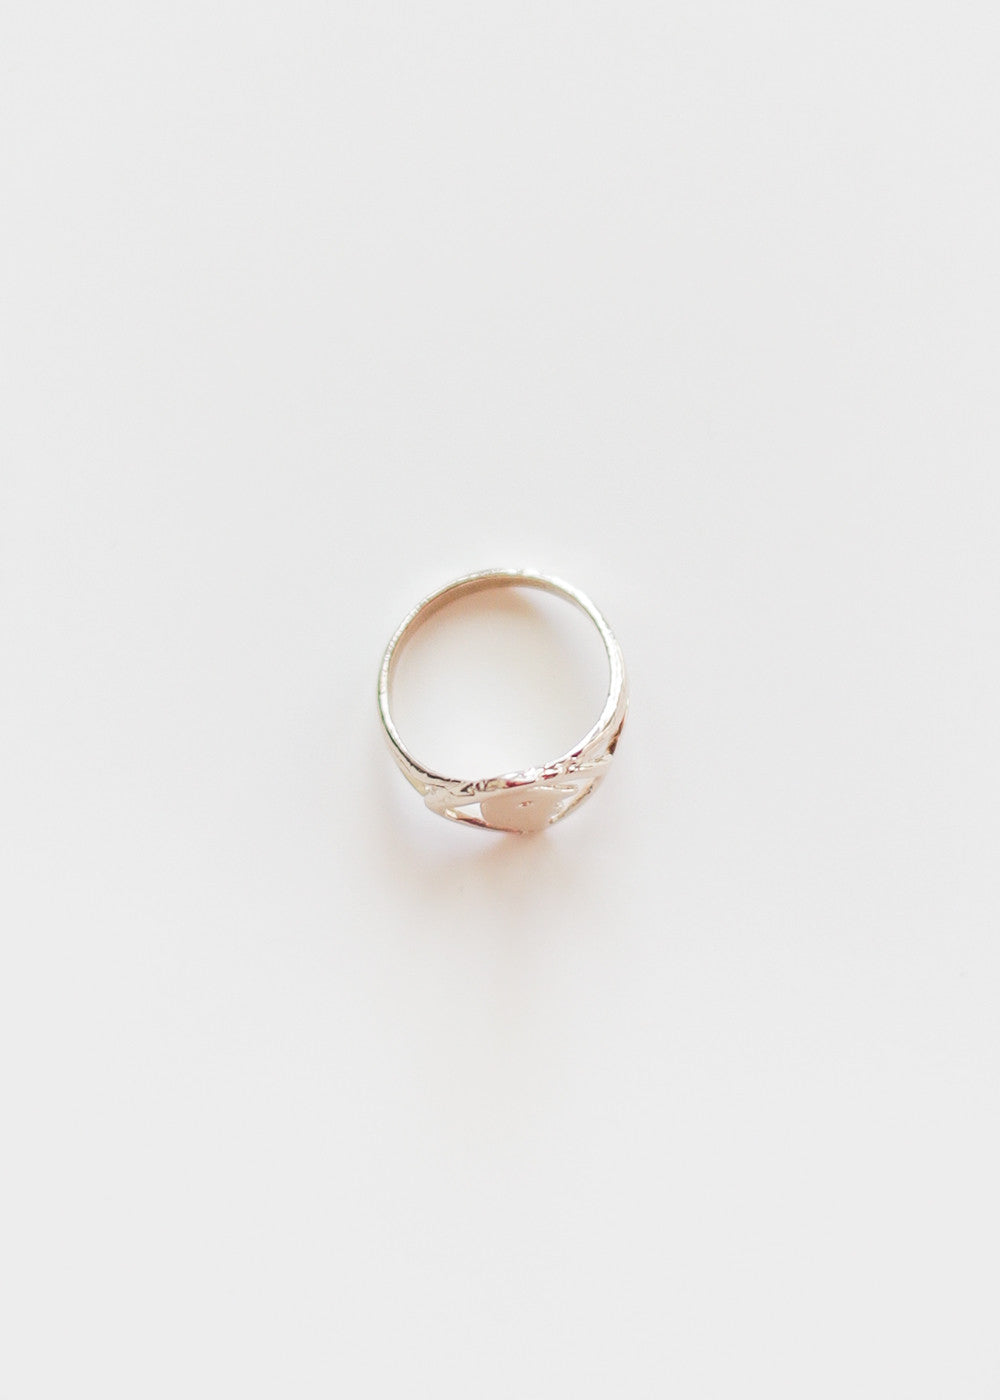 Open House Projects Little Man Ring — Shop sustainable fashion and slow fashion at New Classics Studios